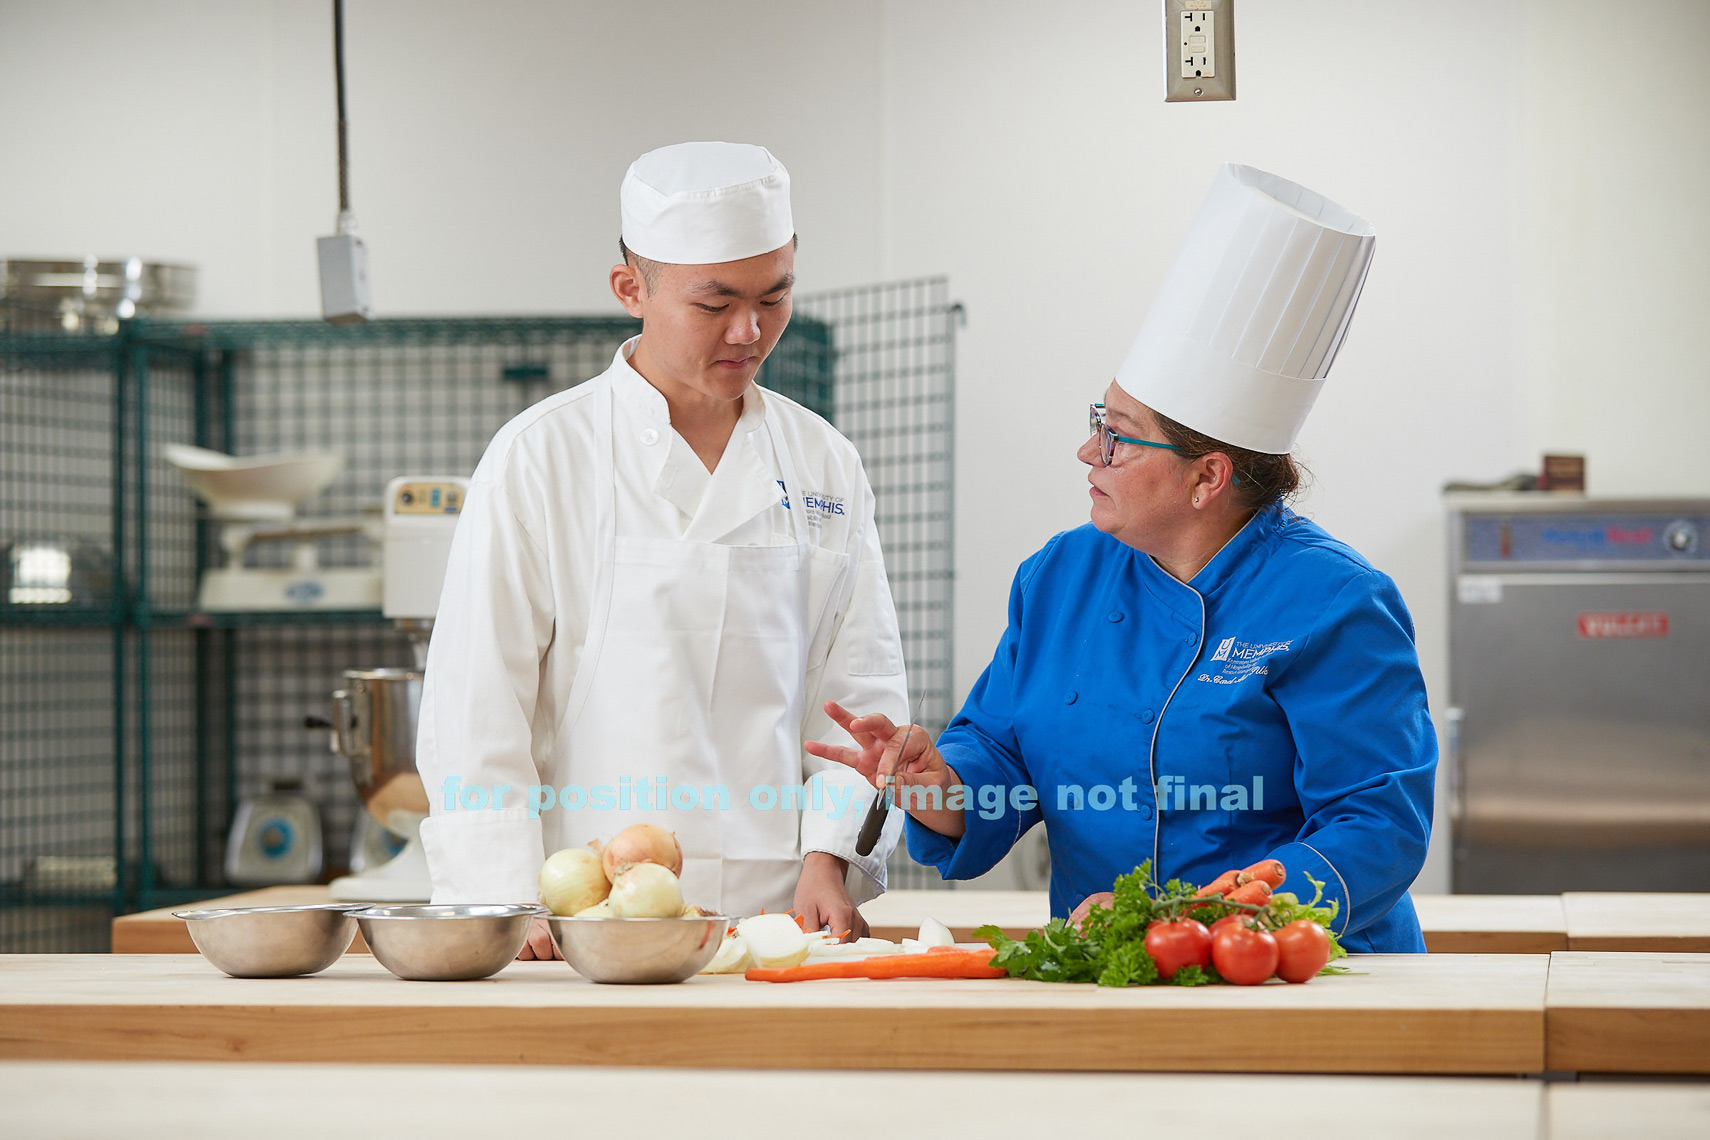 KWS_Culinary_School_0761_TC_20190719